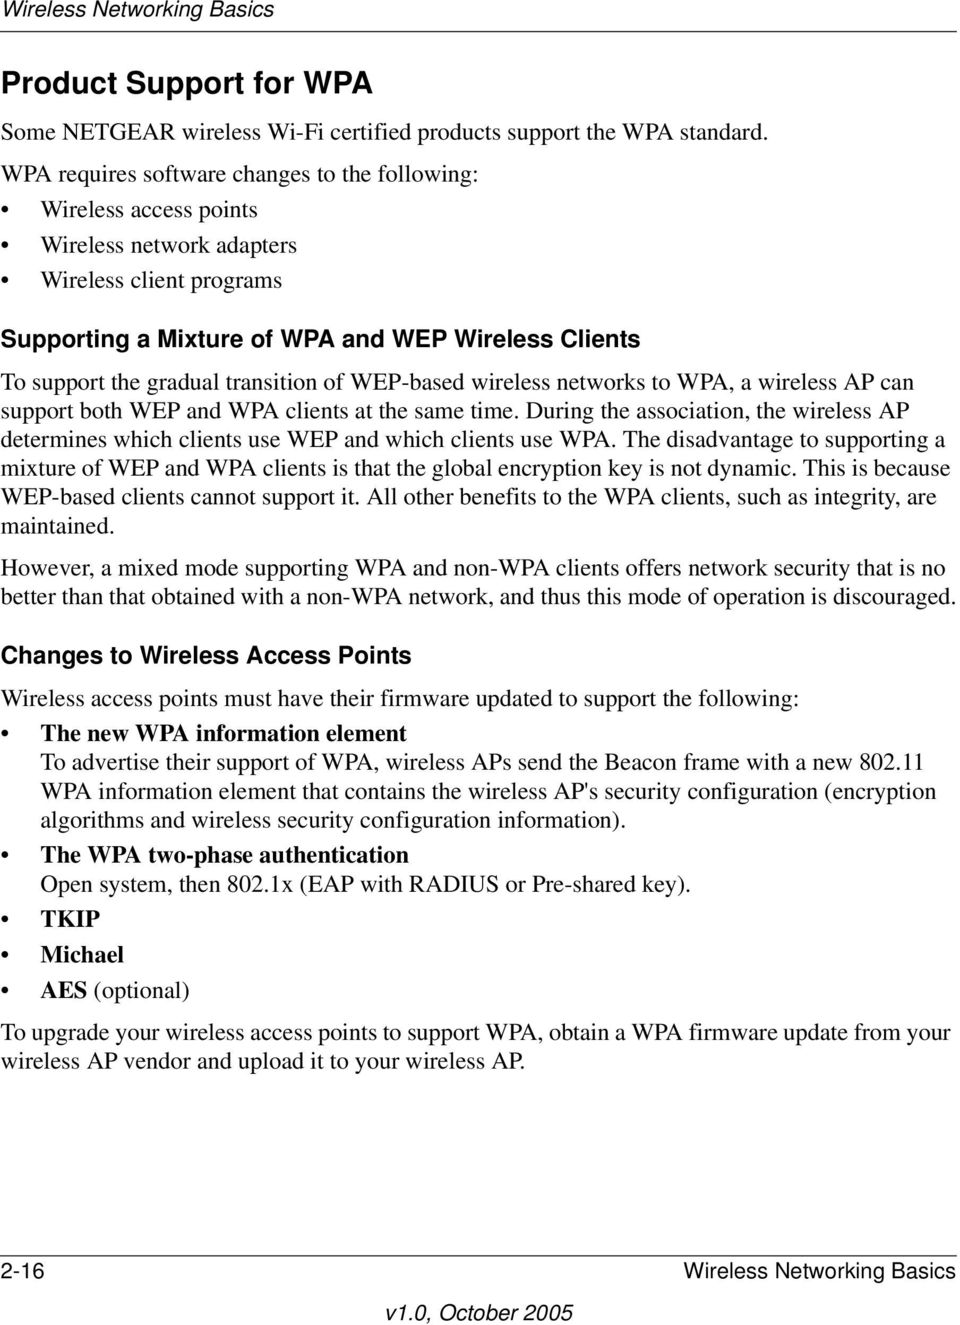 transition of WEP-based wireless networks to WPA, a wireless AP can support both WEP and WPA clients at the same time.